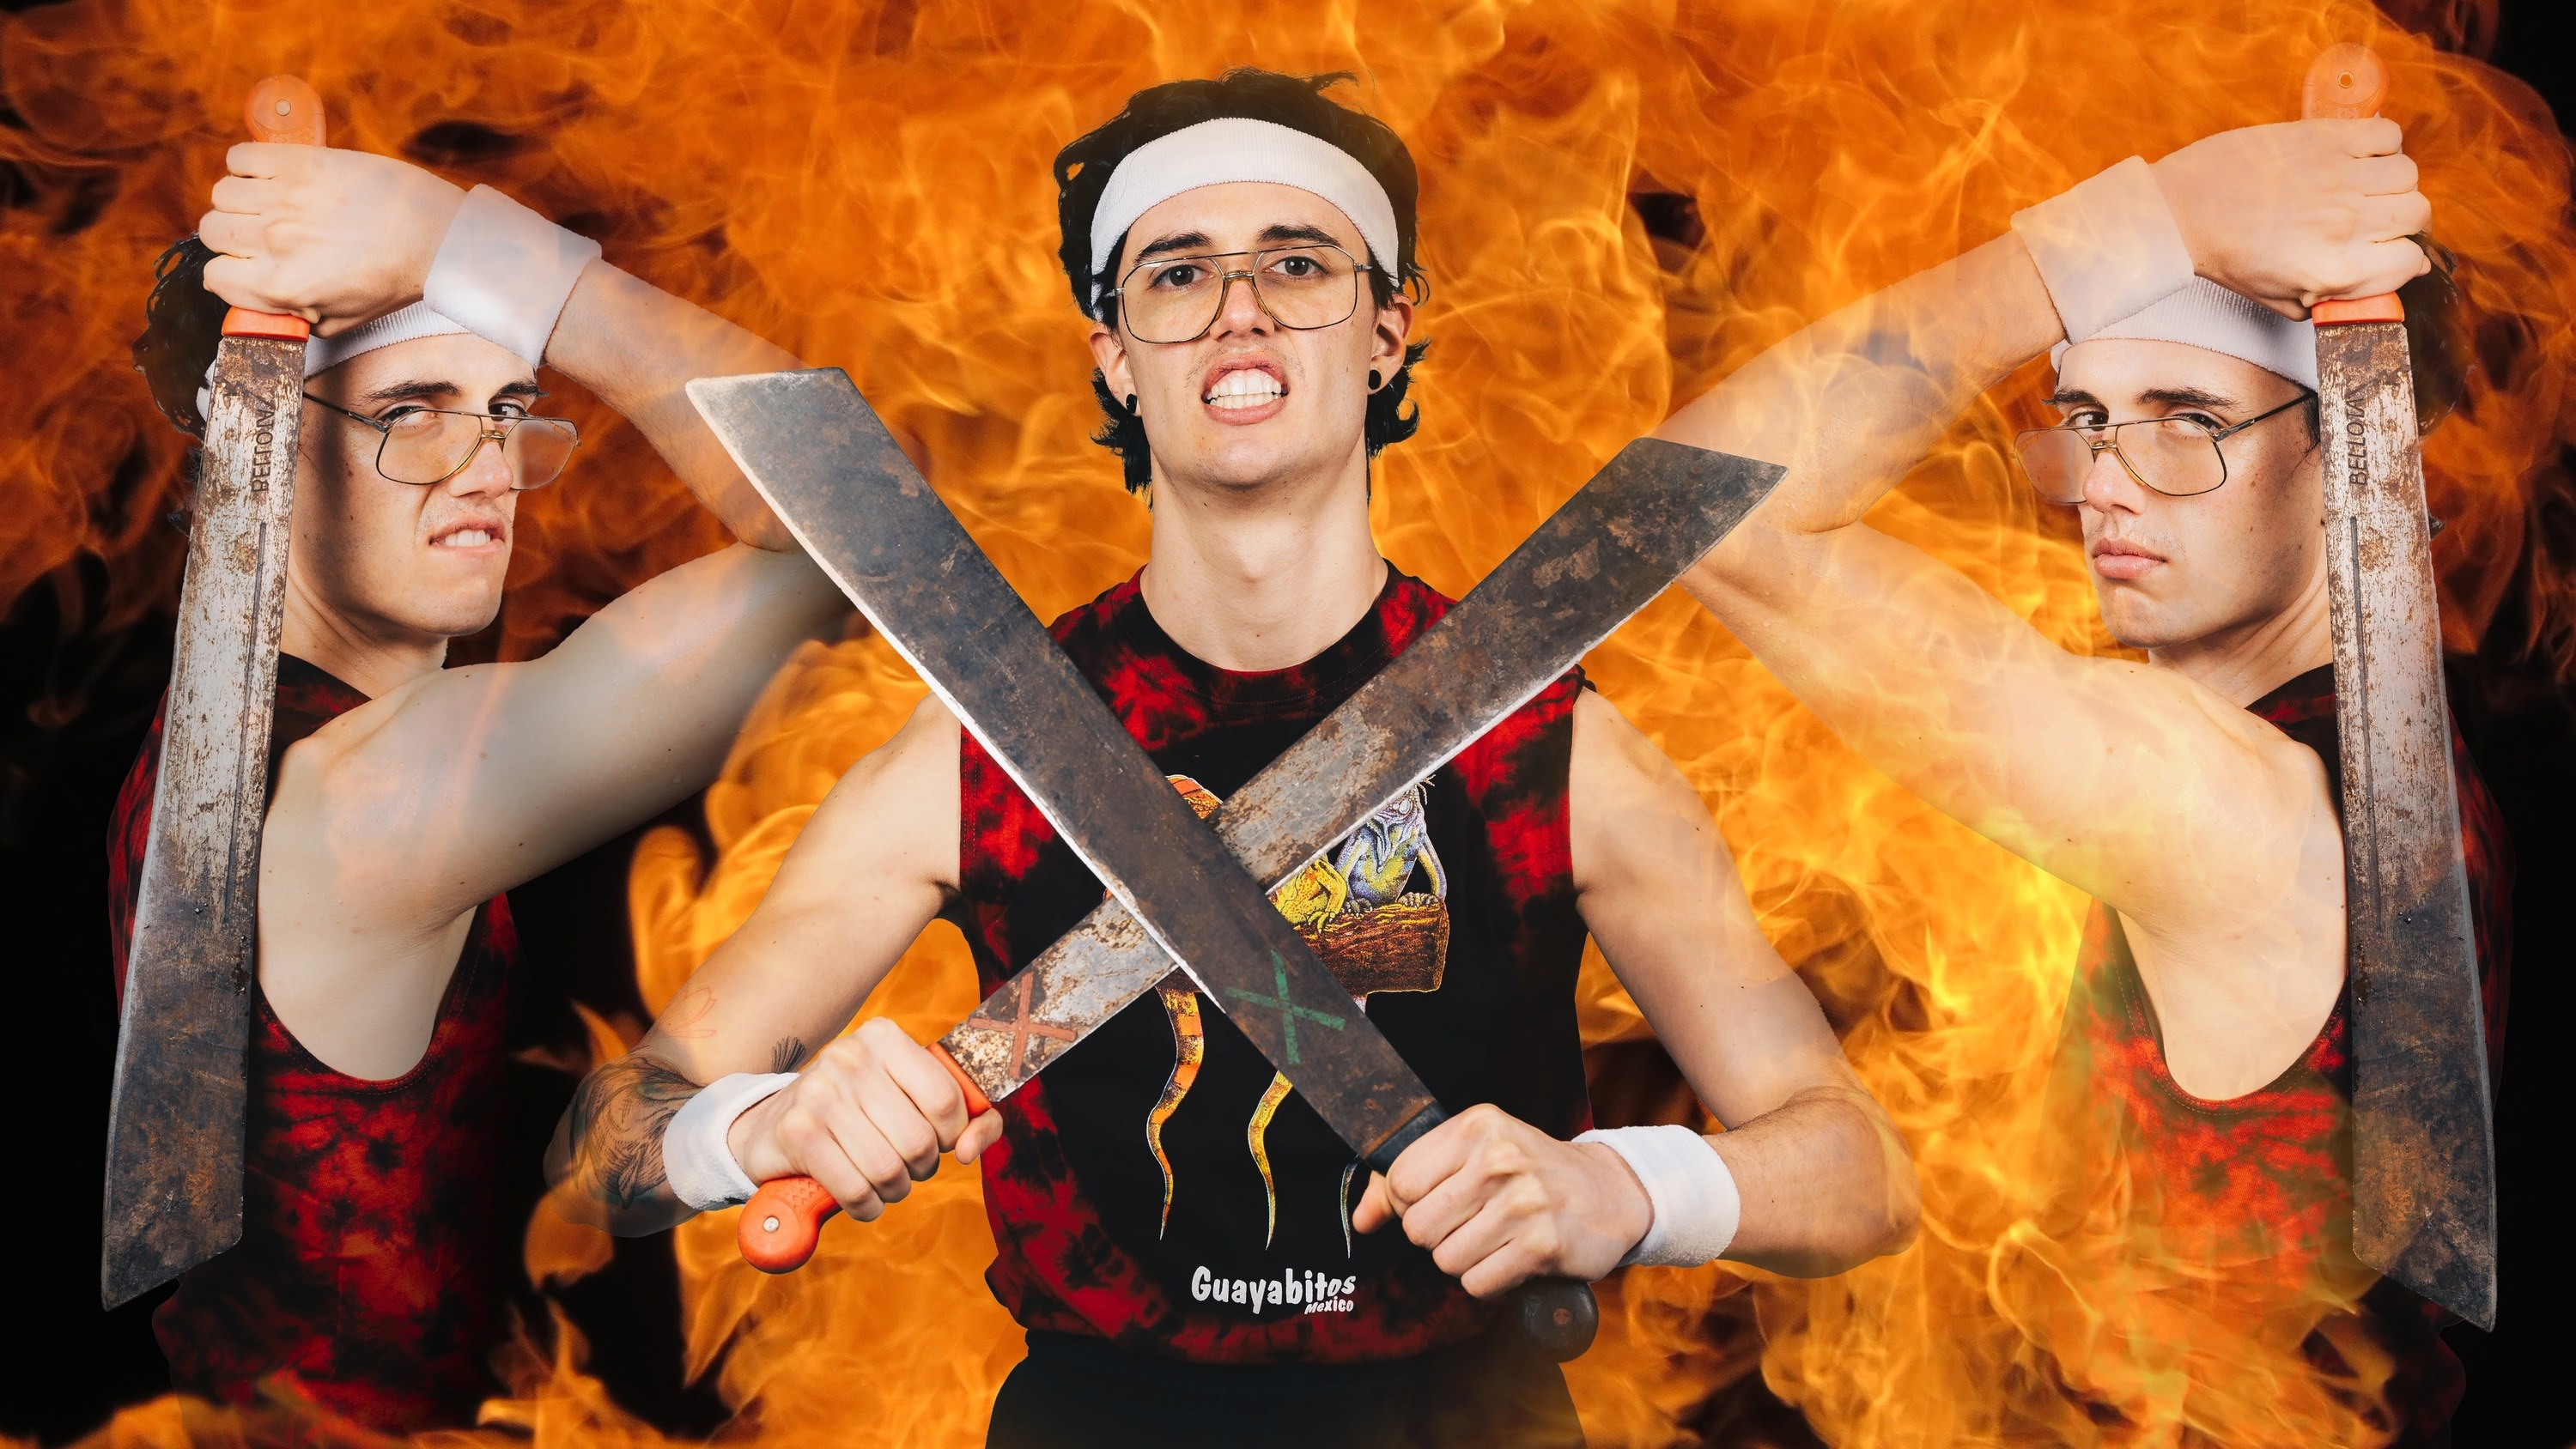 A man dressed in a Monster energy drink tank top is holding katanas with a fire-looking background